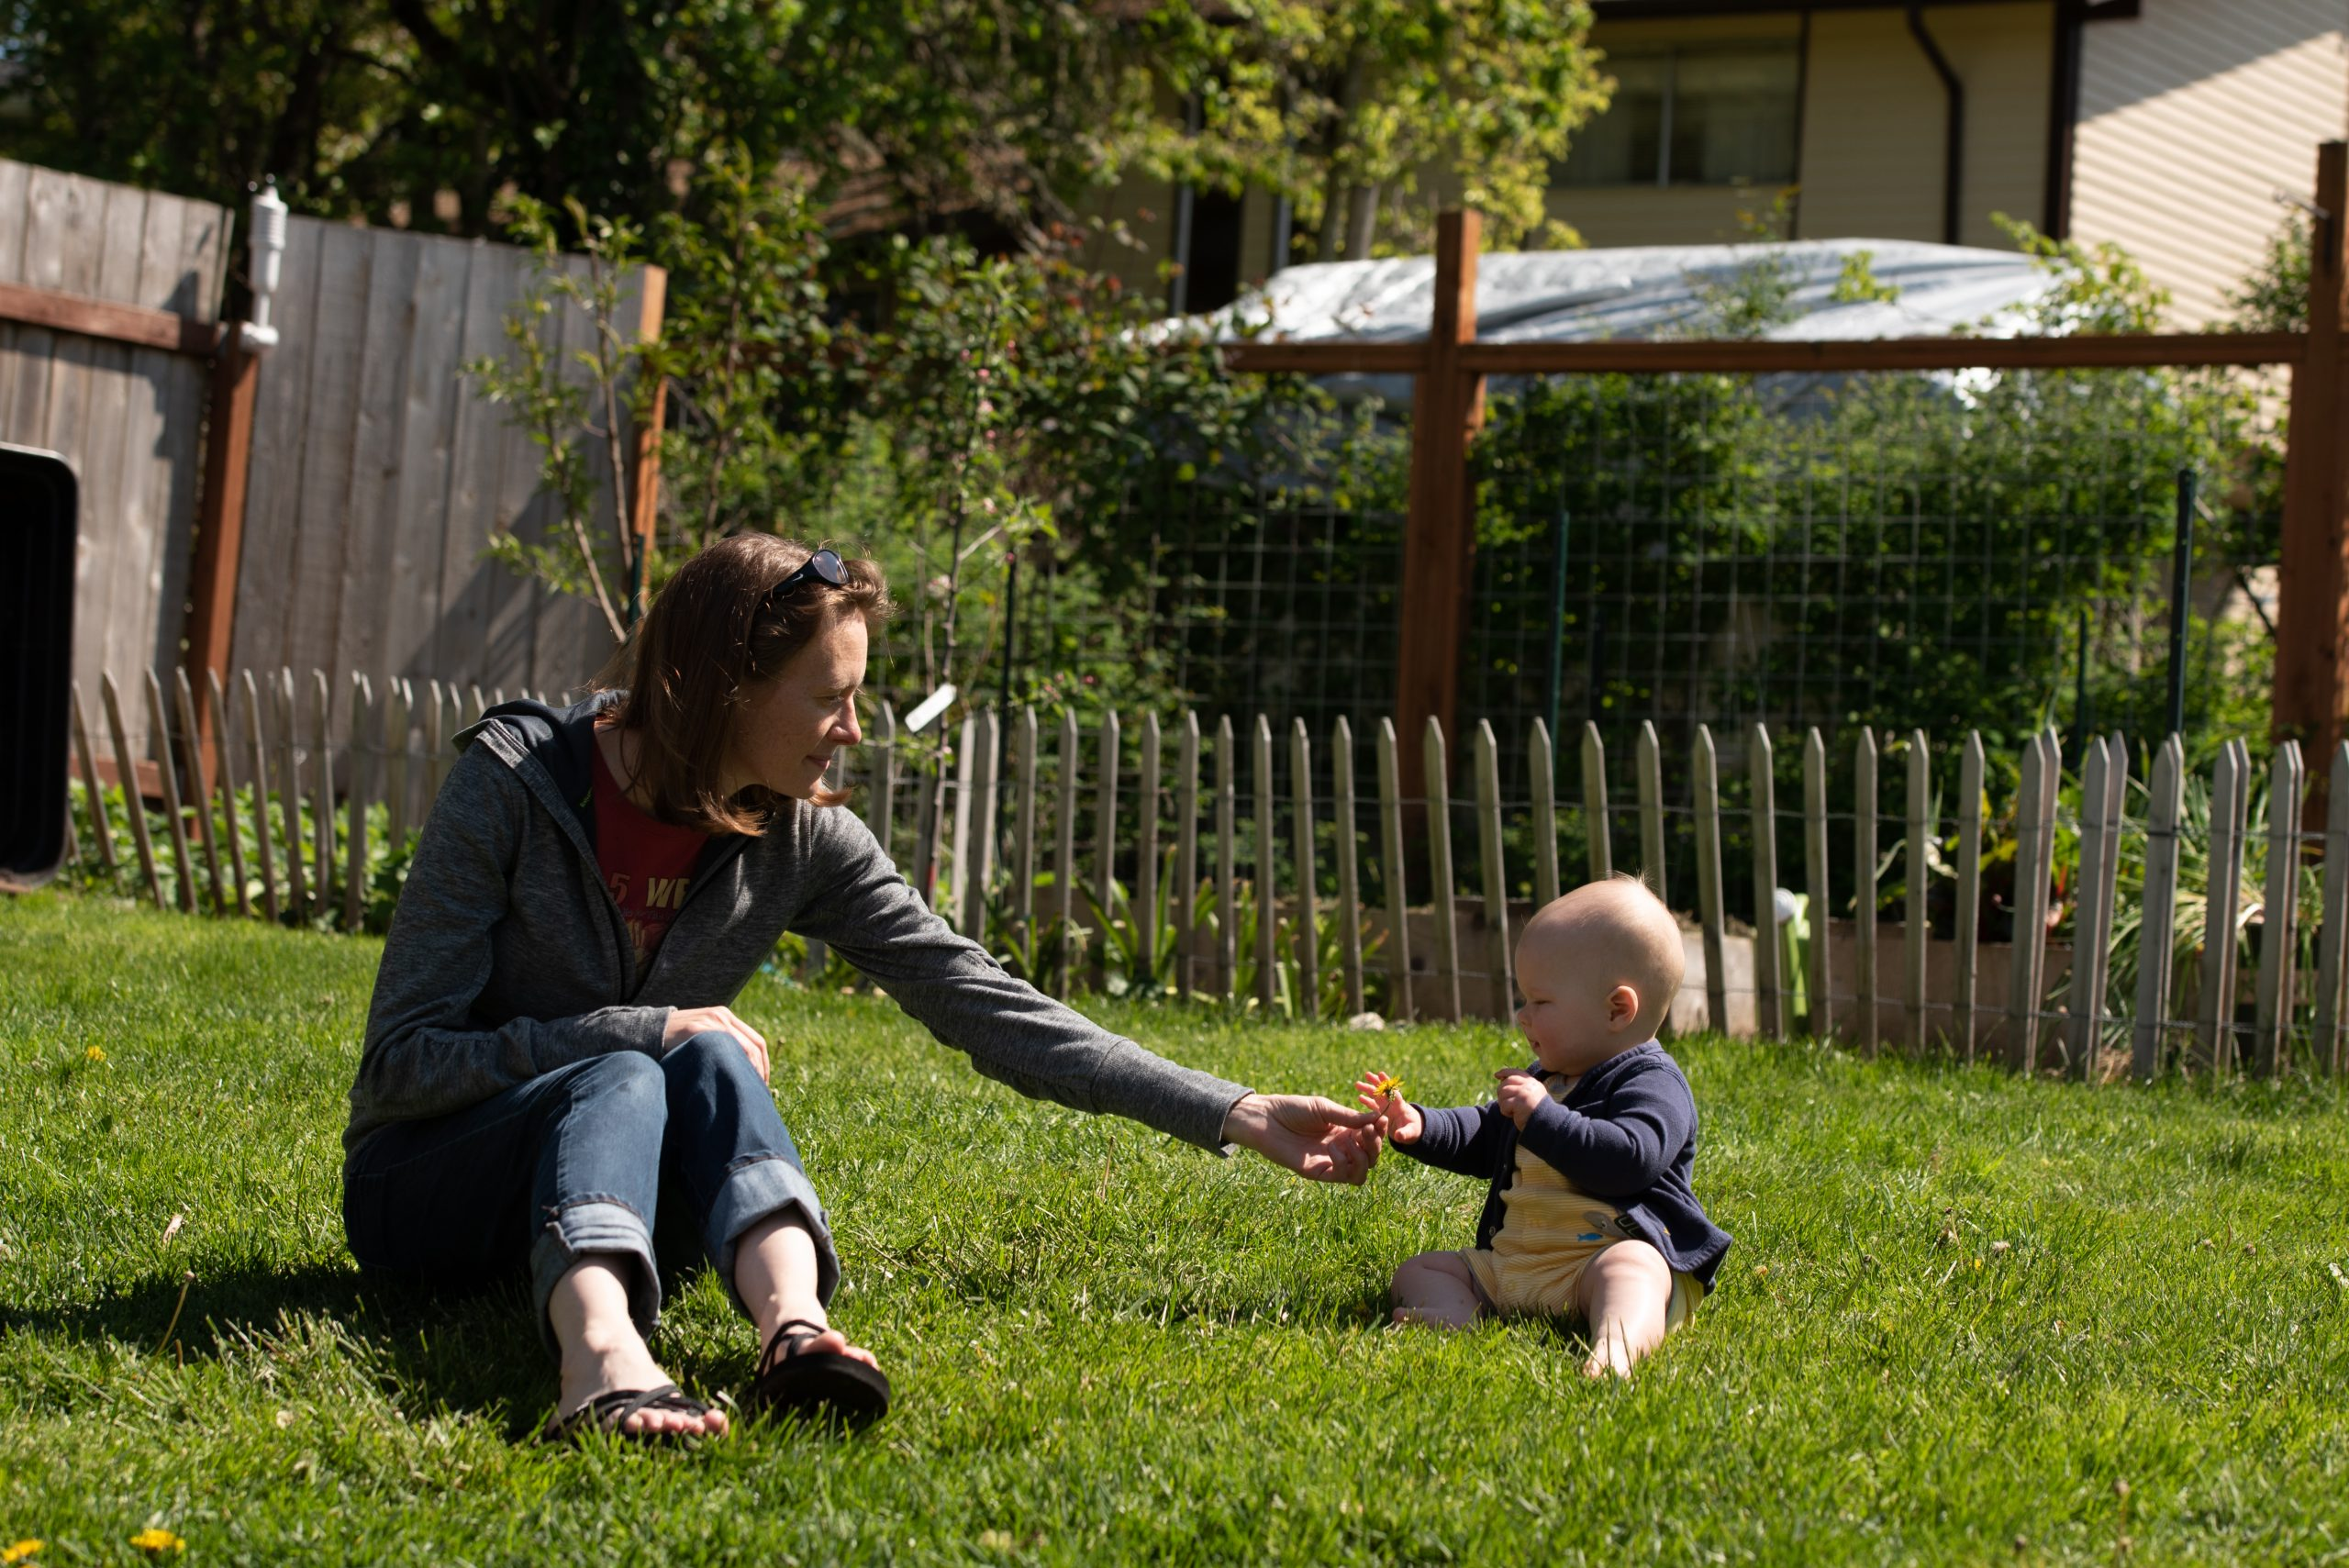 Kristin Page and her baby Fern play in their backyard that is filled with herbs, chickens, and vegetables. Photo by Emily Porter